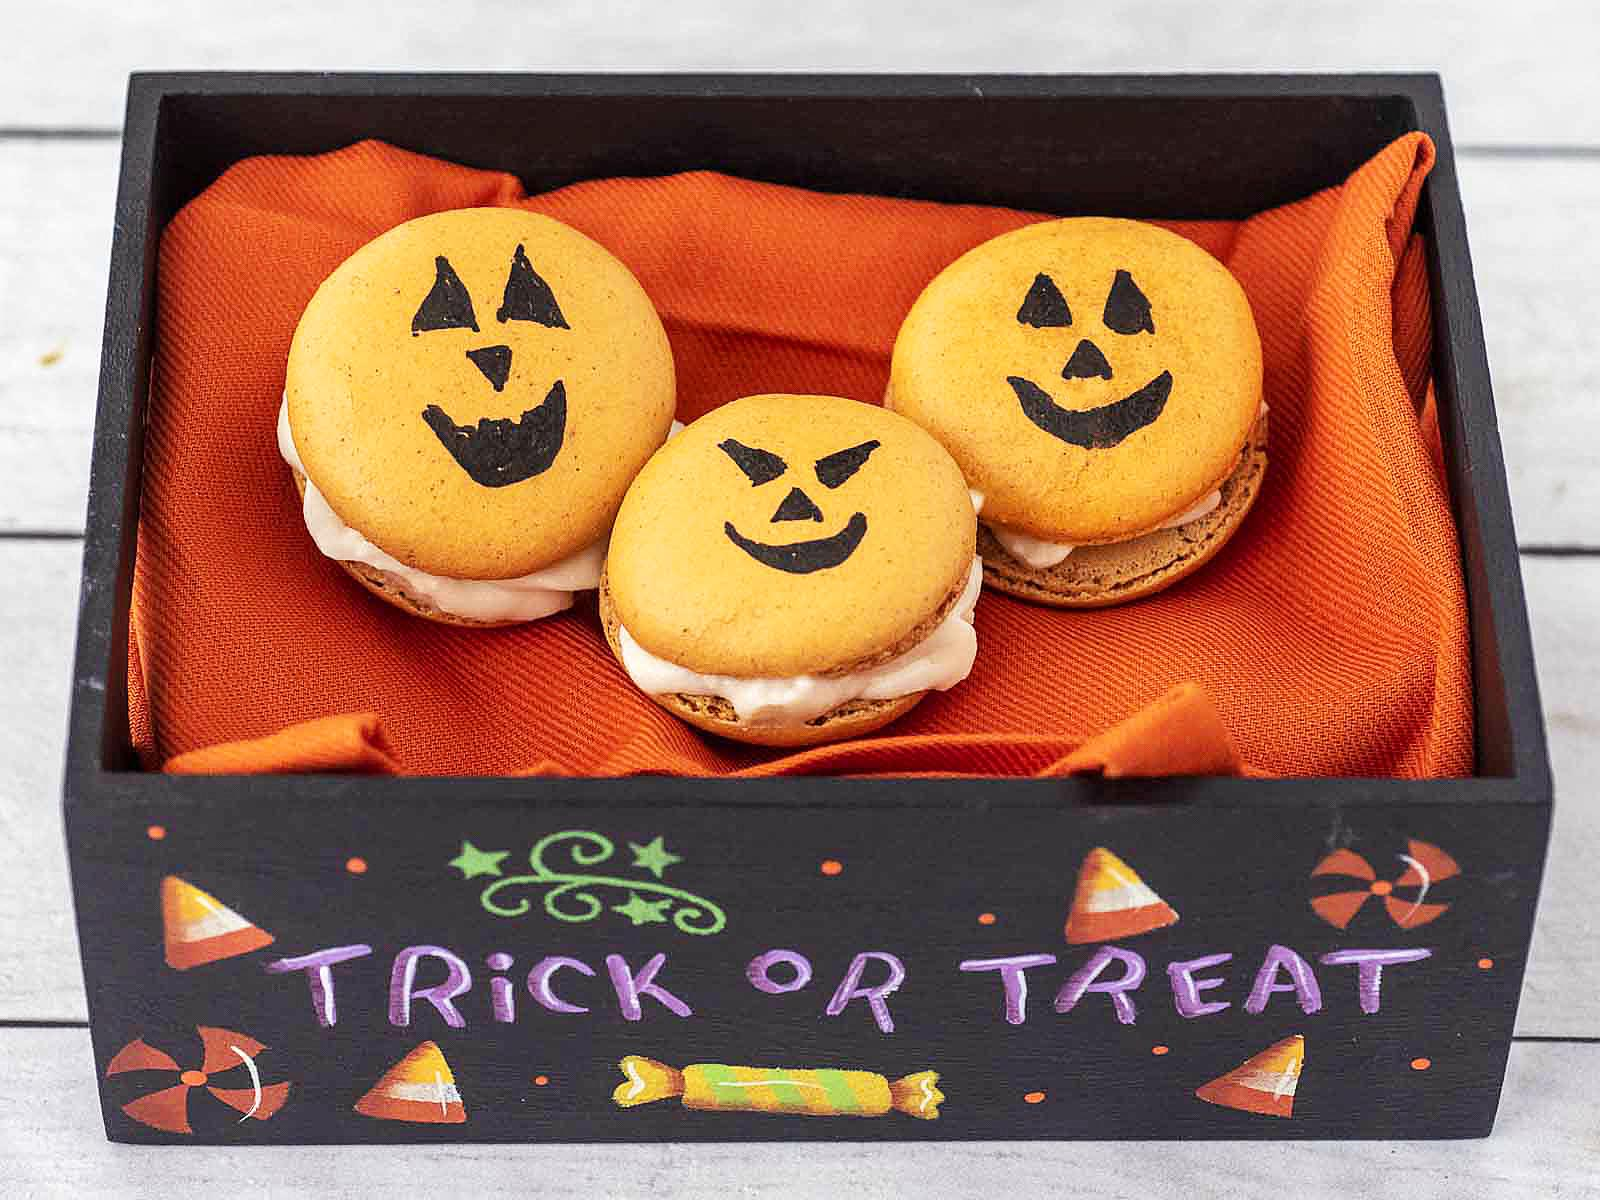 Three Halloween Macarons in a hand-painted Trick or Treat box.